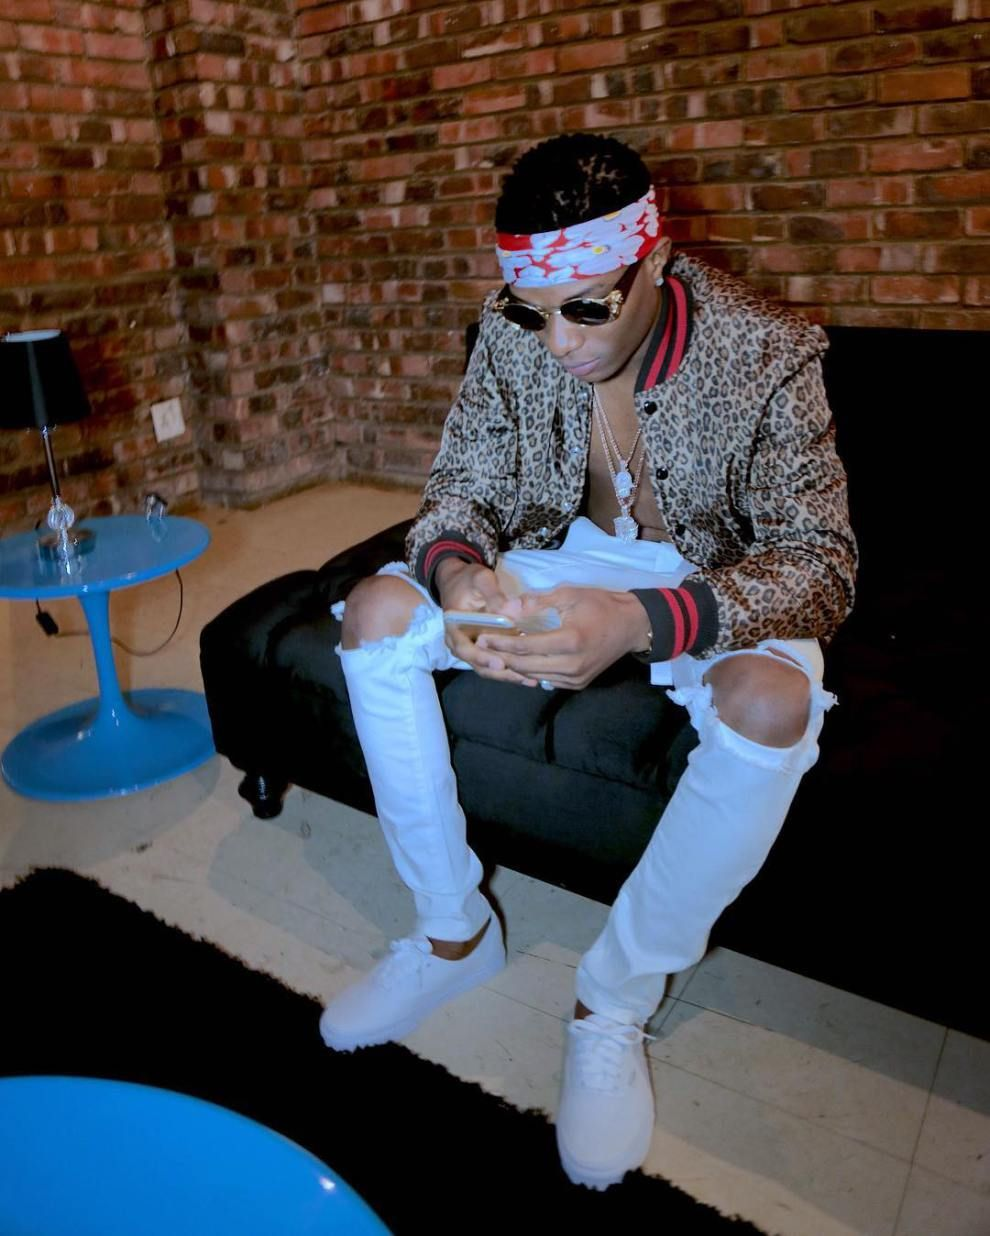 It is no news that Nigerian artiste – Wizkid a.k.a Starboy – has gone  international and